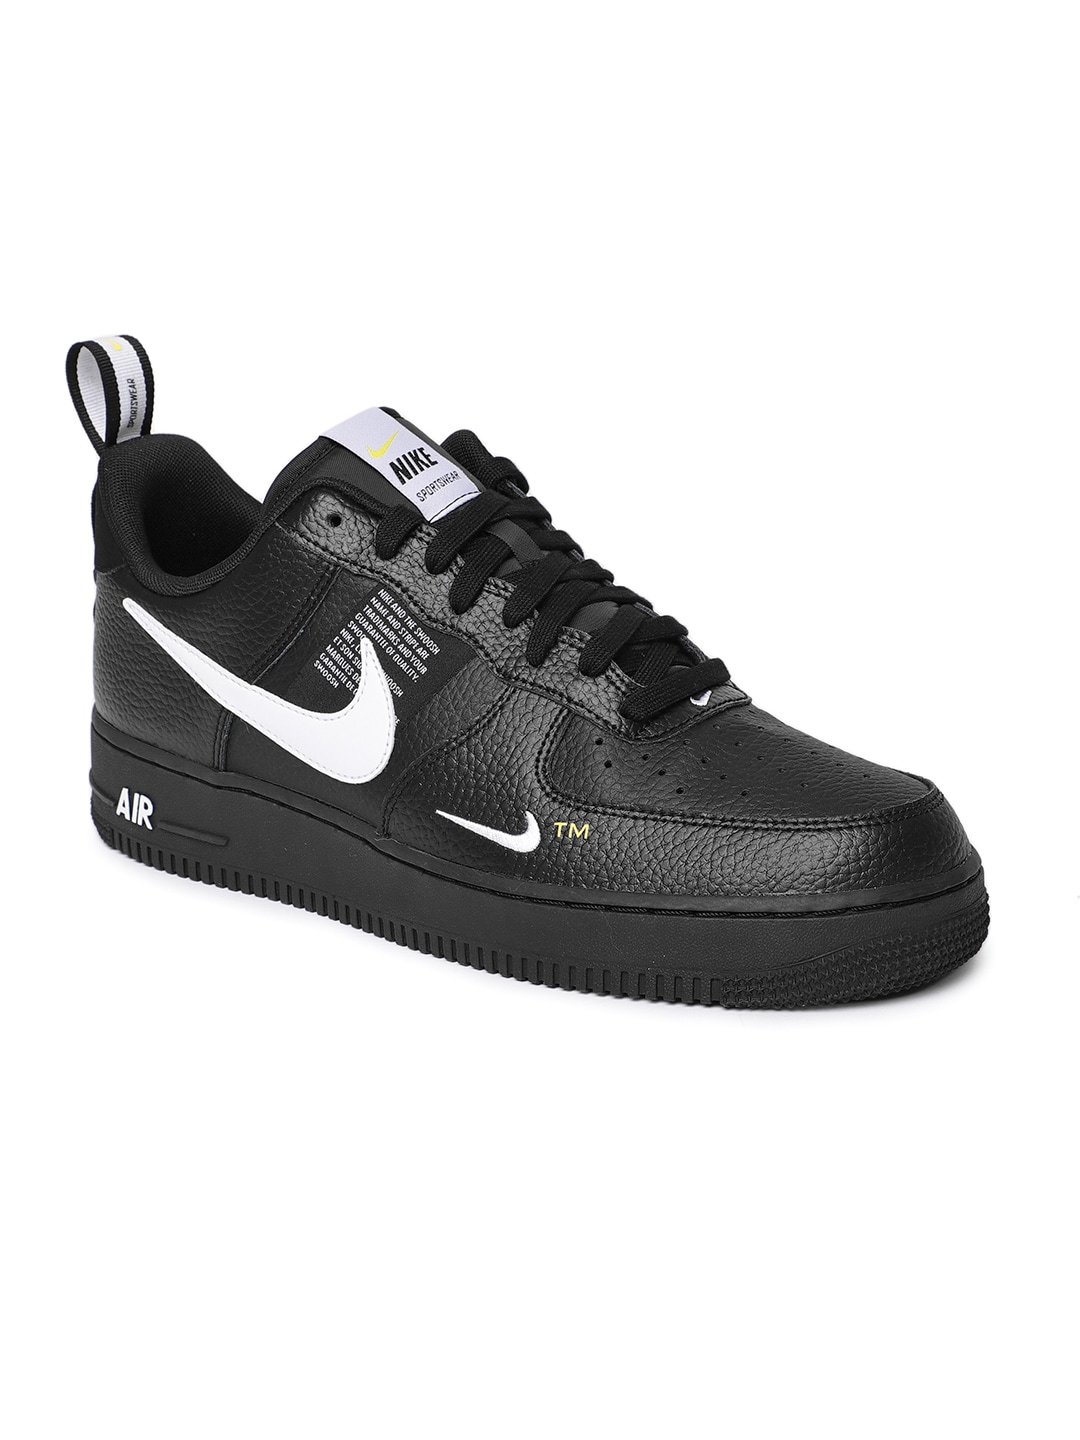 fdf5182ff3 Nike Football Casual Shoes - Buy Nike Football Casual Shoes online in India